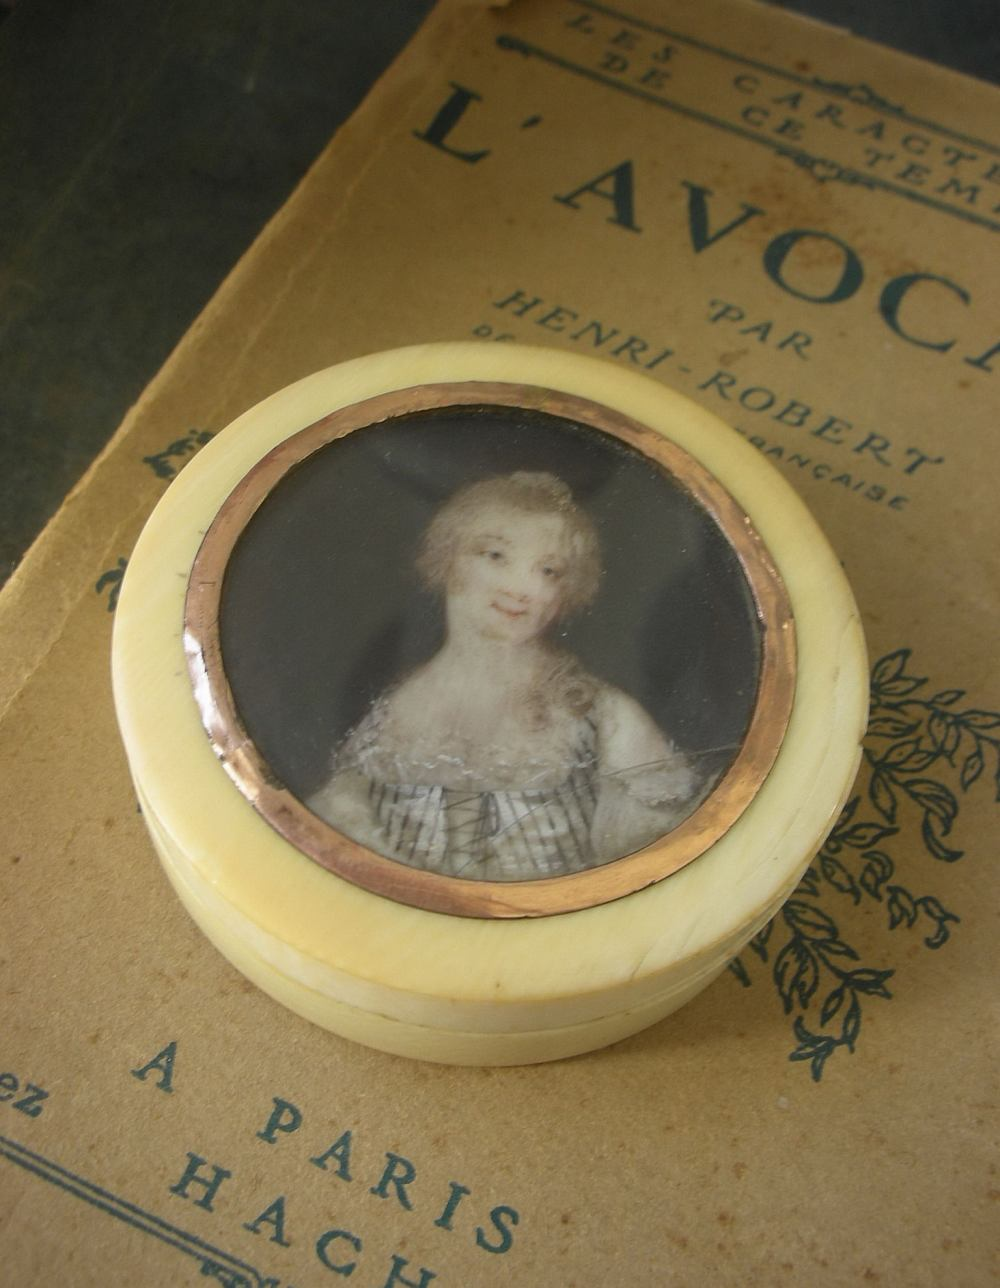 18th century portrait ivory box